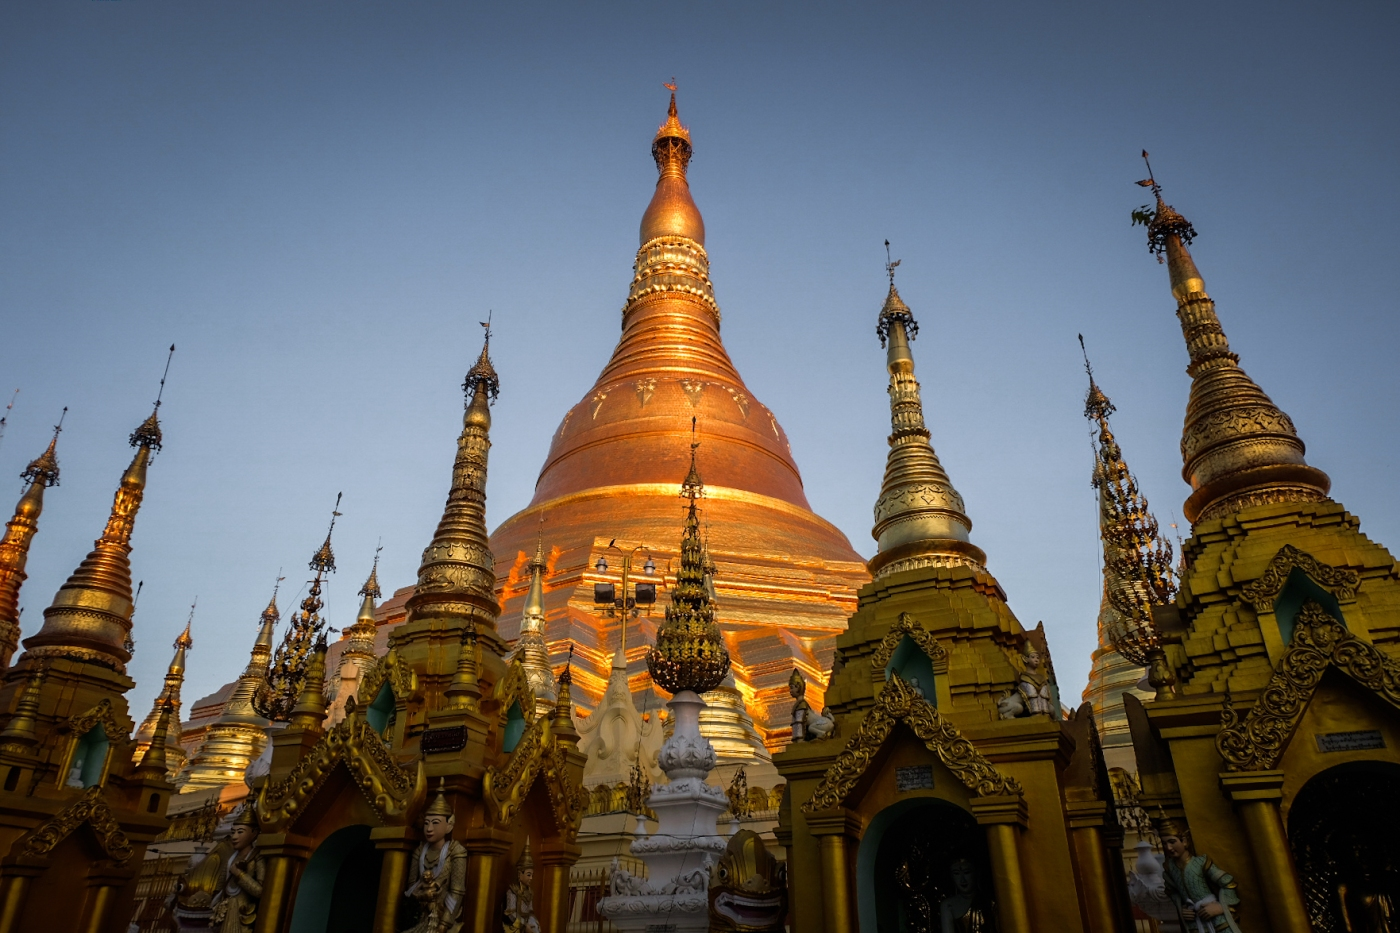 The backpacker's guide to Yangon